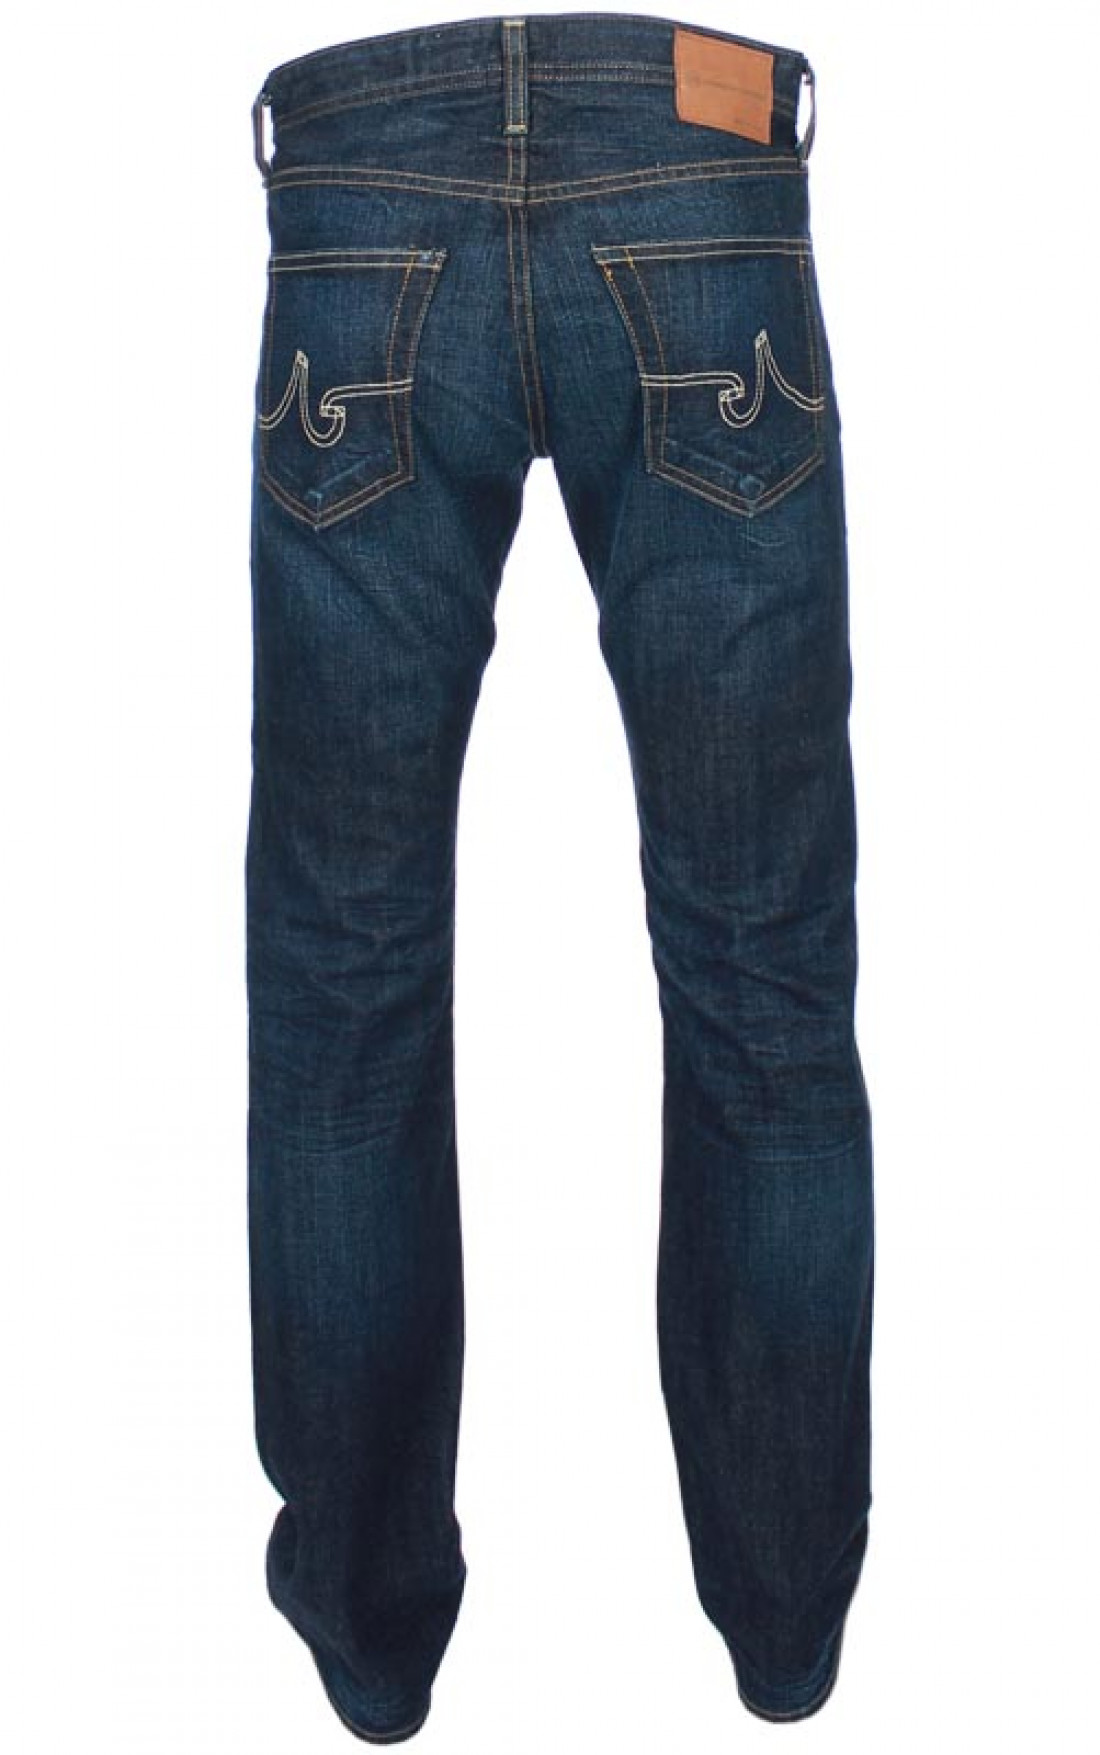 adriano goldschmied mens slim jeans 39 matchbox 39 blue jeans boudi uk. Black Bedroom Furniture Sets. Home Design Ideas